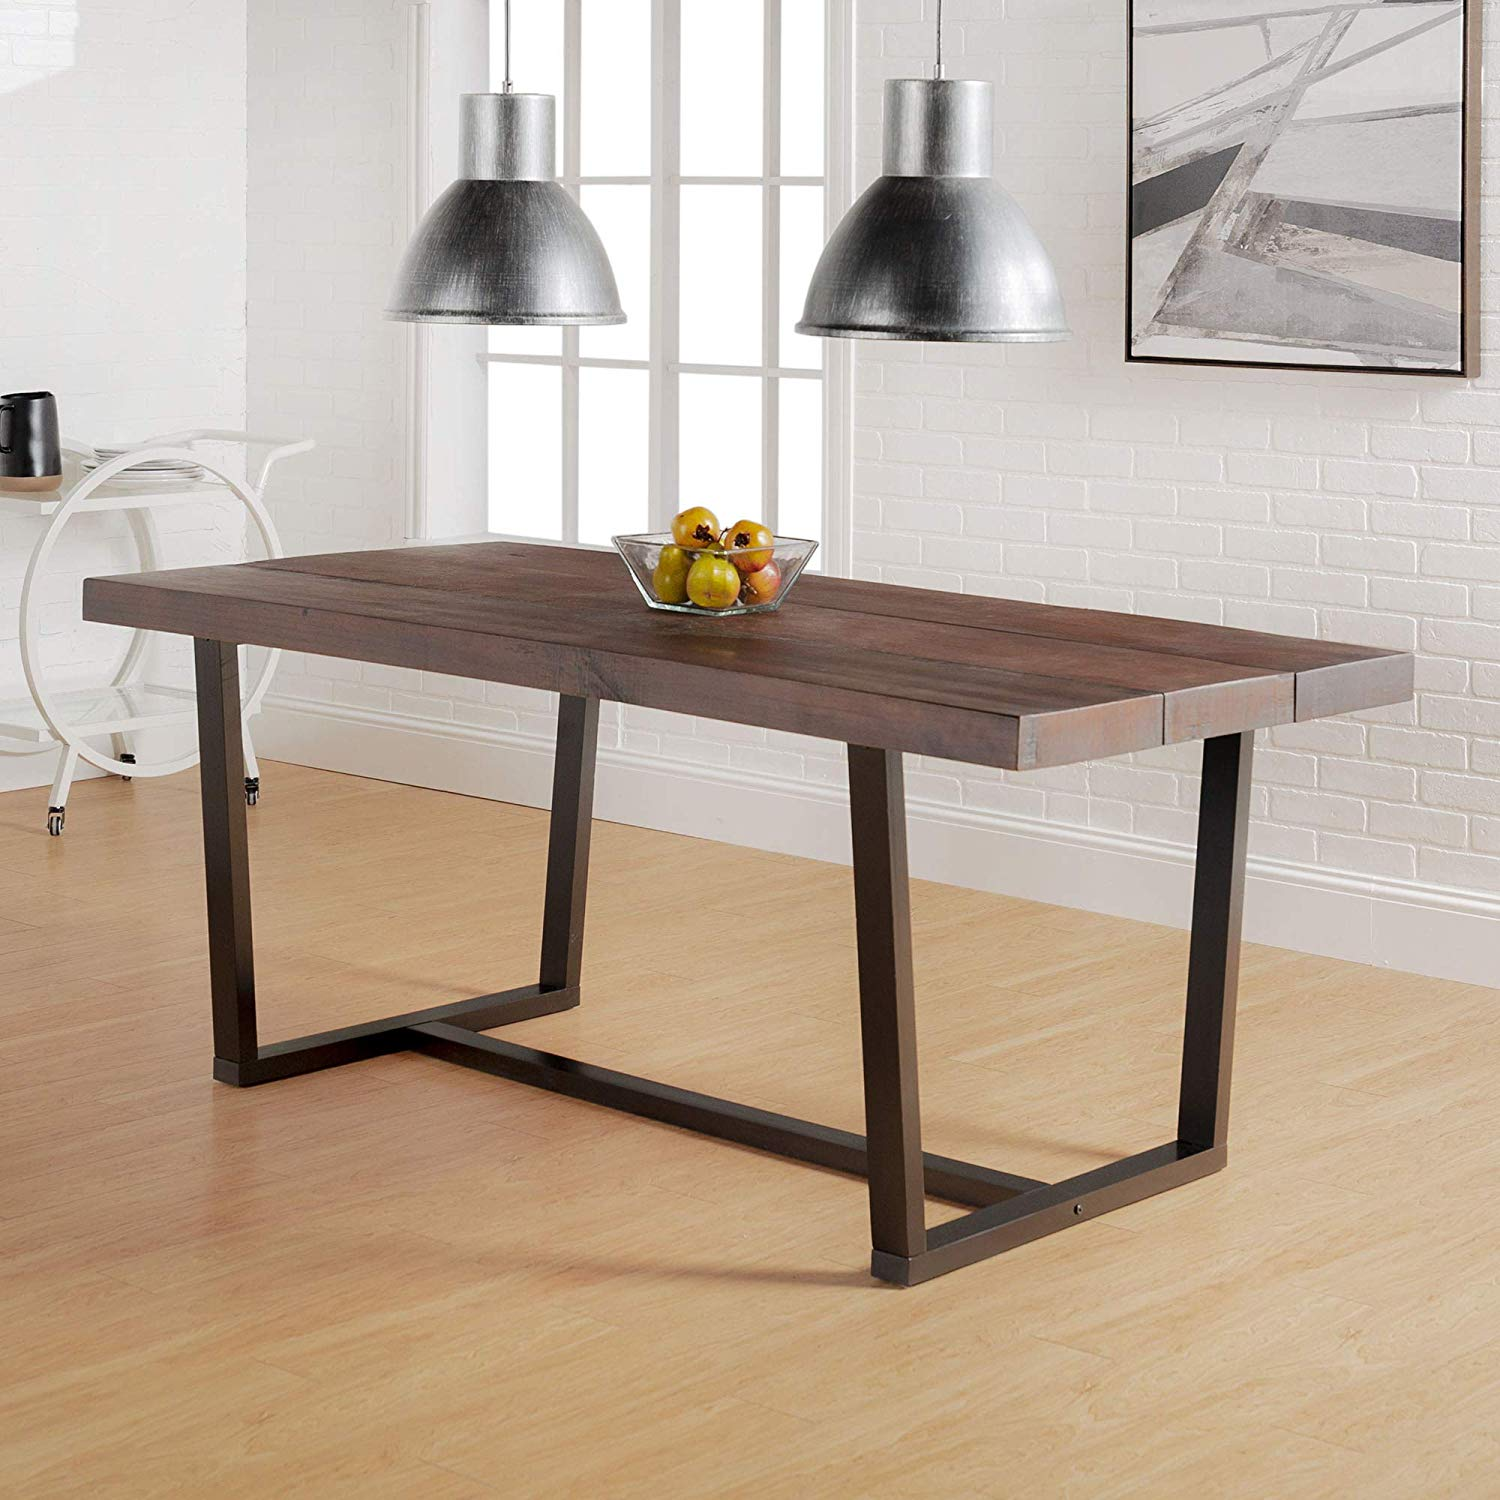 Cheap 30 X 72 Dining Table Find 30 X 72 Dining Table Deals On Line At Alibaba Com